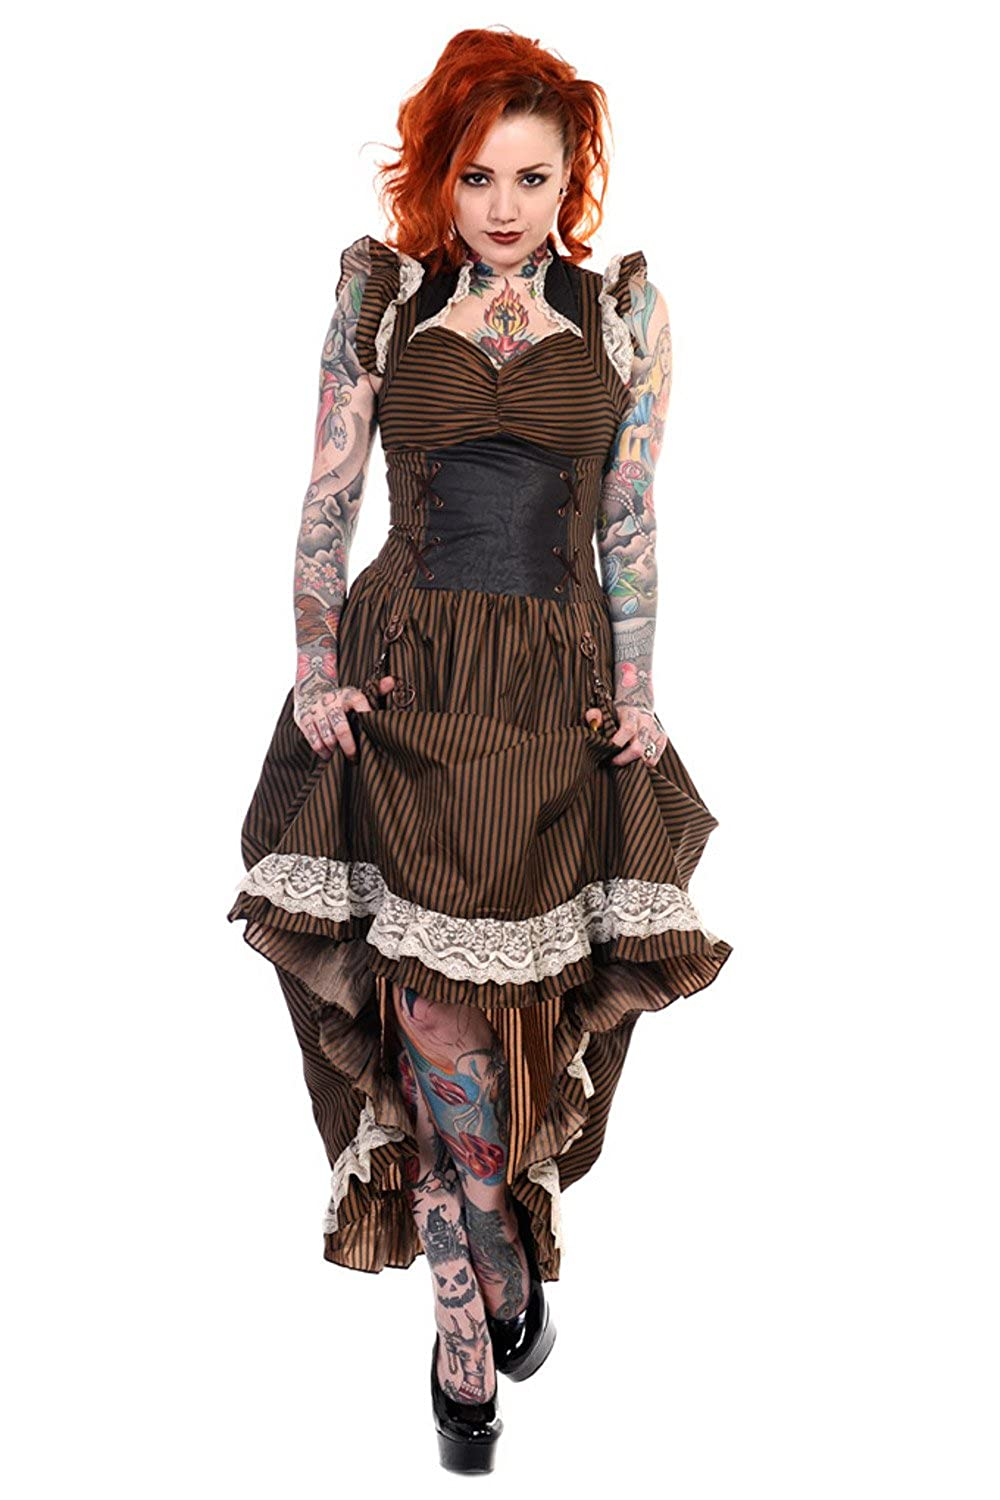 Steampunk Dresses and Costumes Stripe Steampunk Vintage Victorian Corset Dress $84.00 AT vintagedancer.com